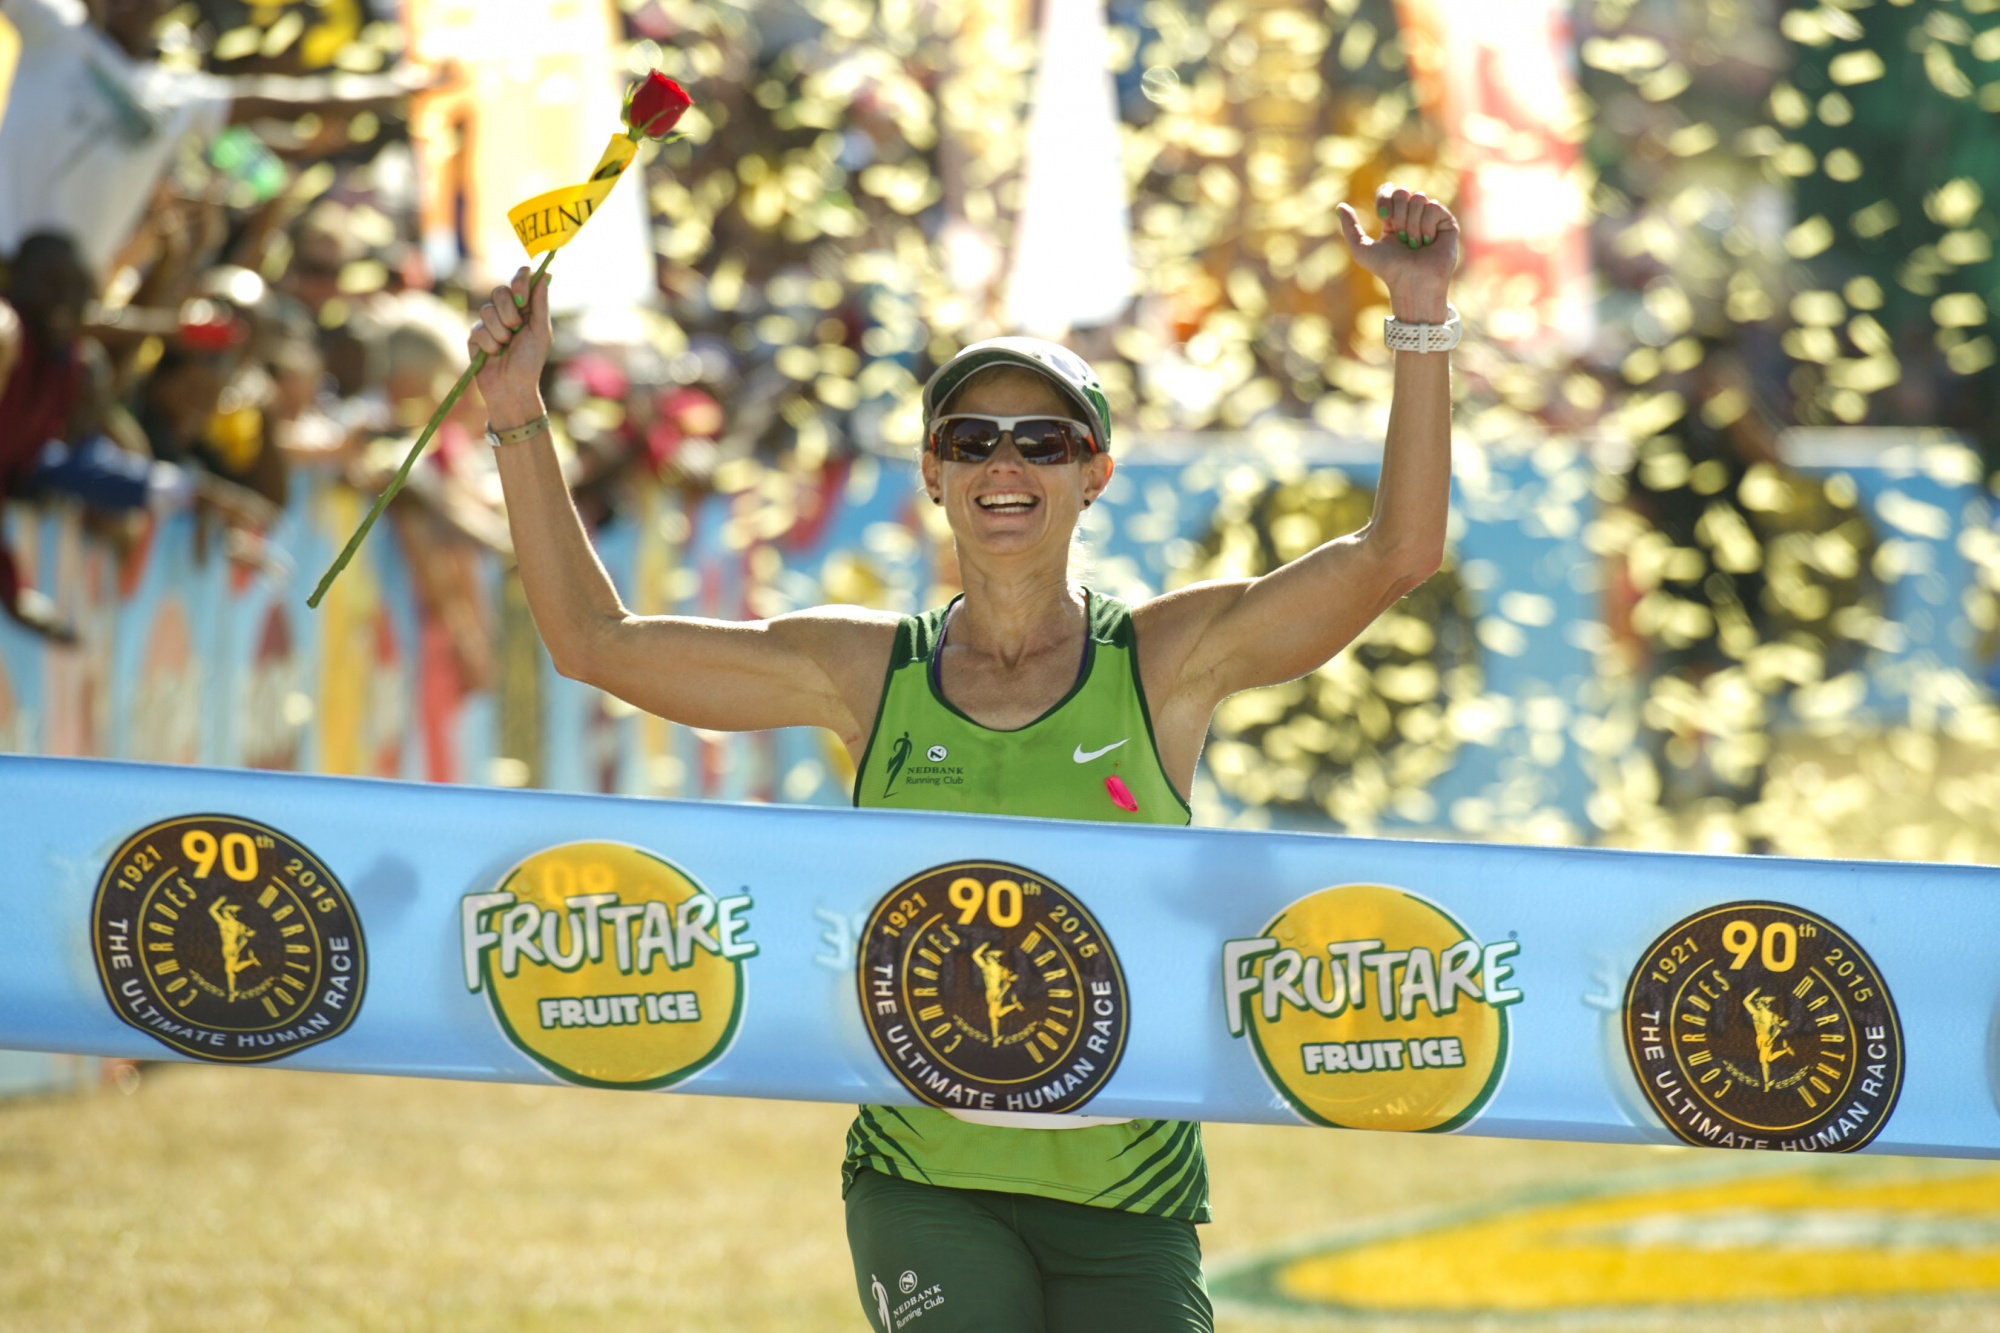 Caroline Wöstmann celebrates her 2015 Comrades Marathon victory. Her ability to manage the massive 90km race into smaller segments meant she was able to achieve small victories along the way .Image supplied by HaikoWöstmann